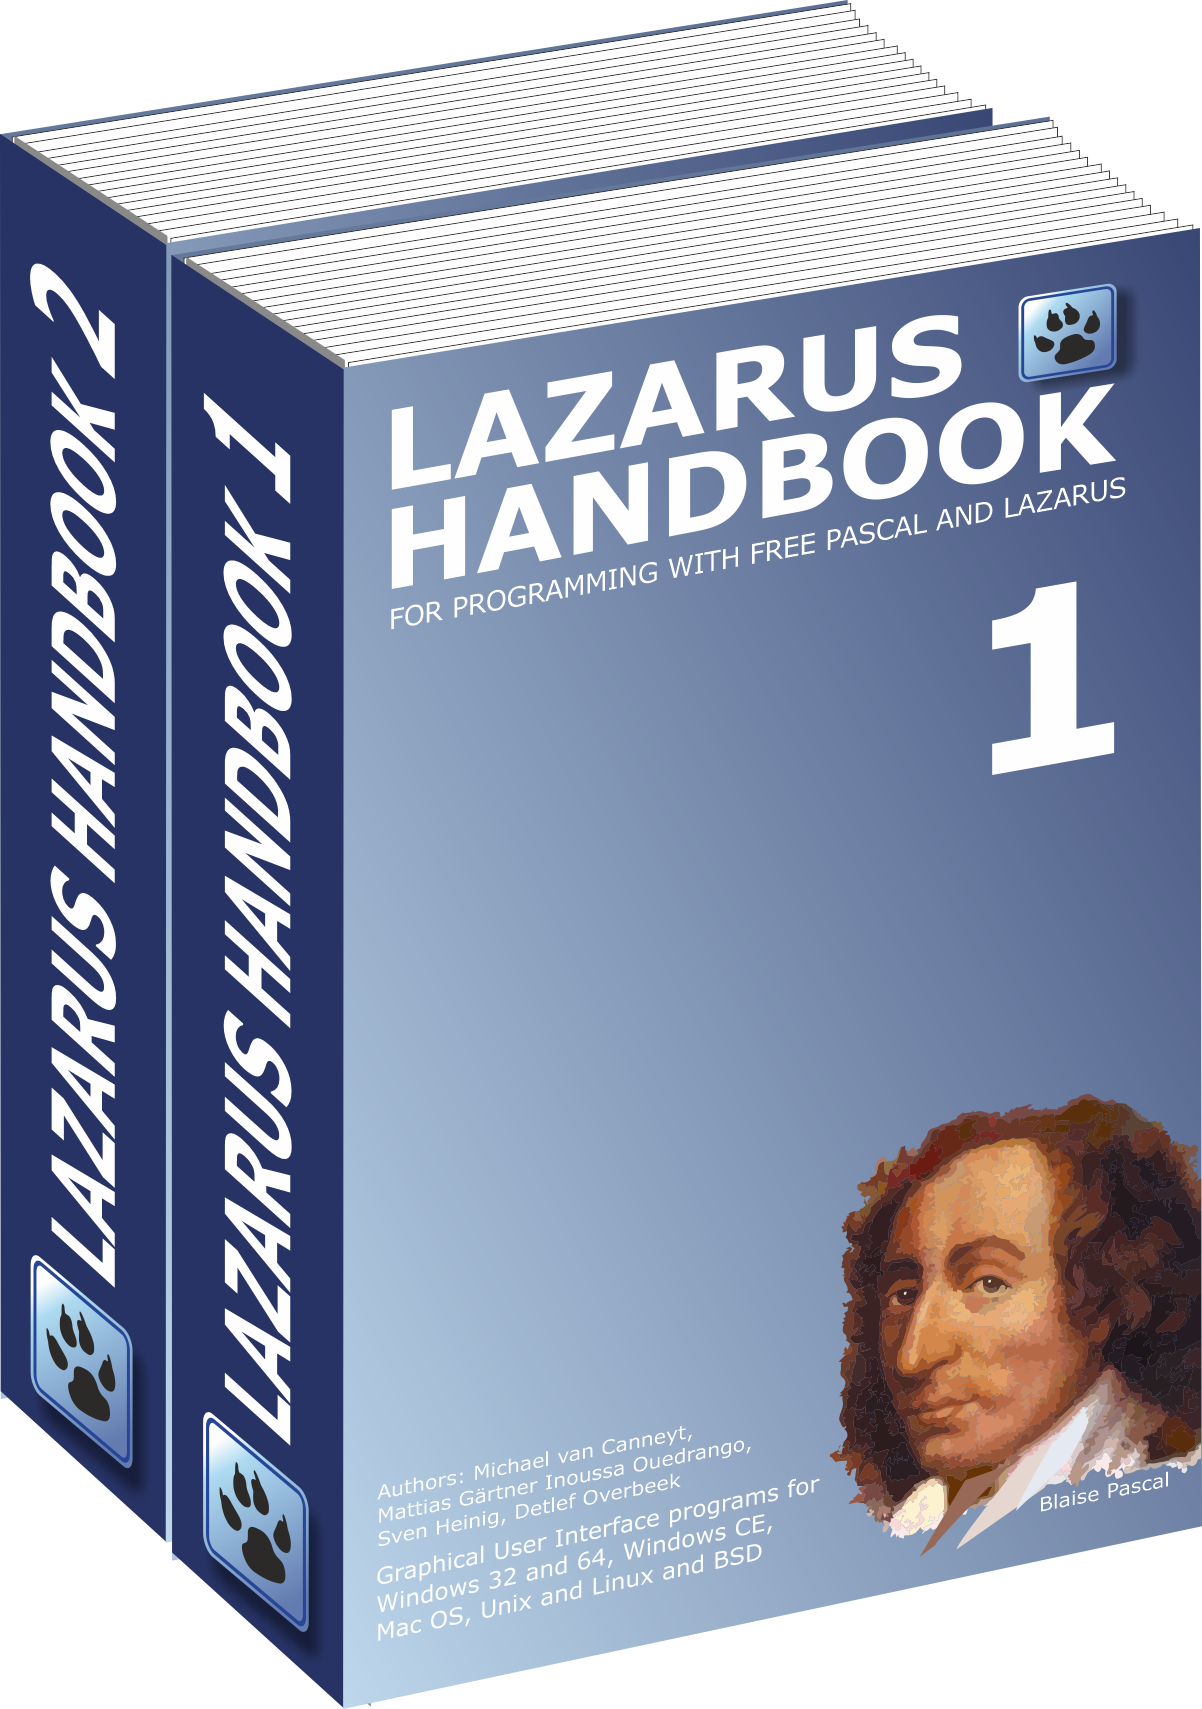 New Update about Lazarus Handbook 13  13/3/2020